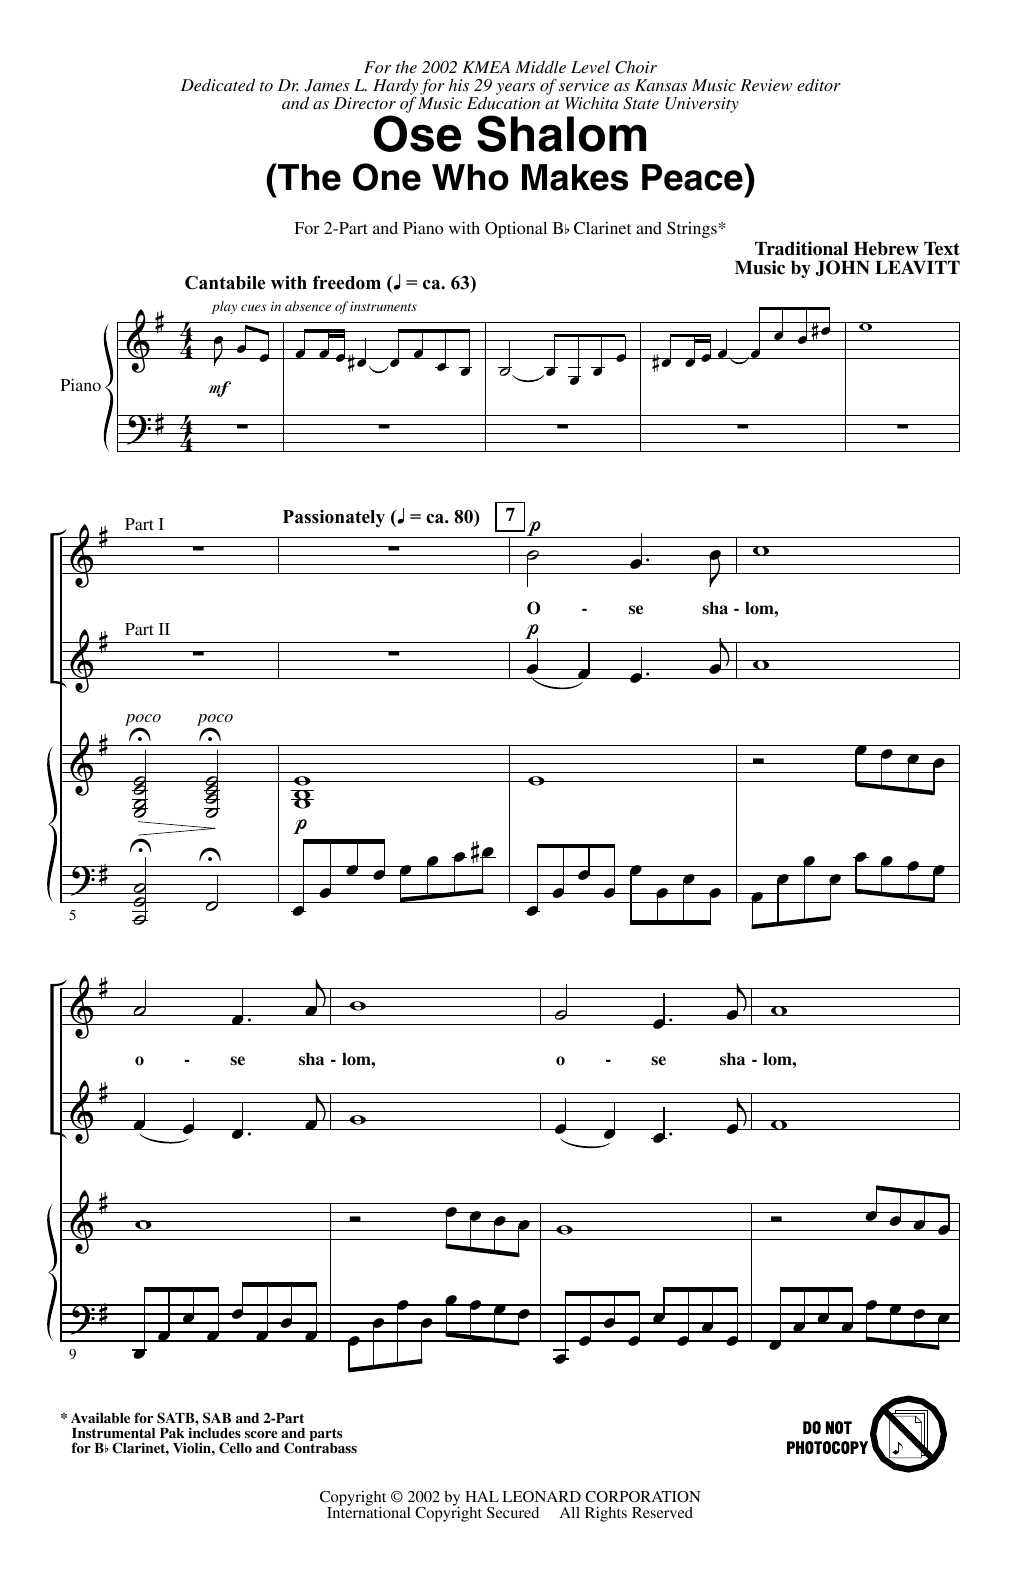 7 Years Piano Pdf ose shalom (the one who makes peace)john leavitt 2-part choir digital  sheet music